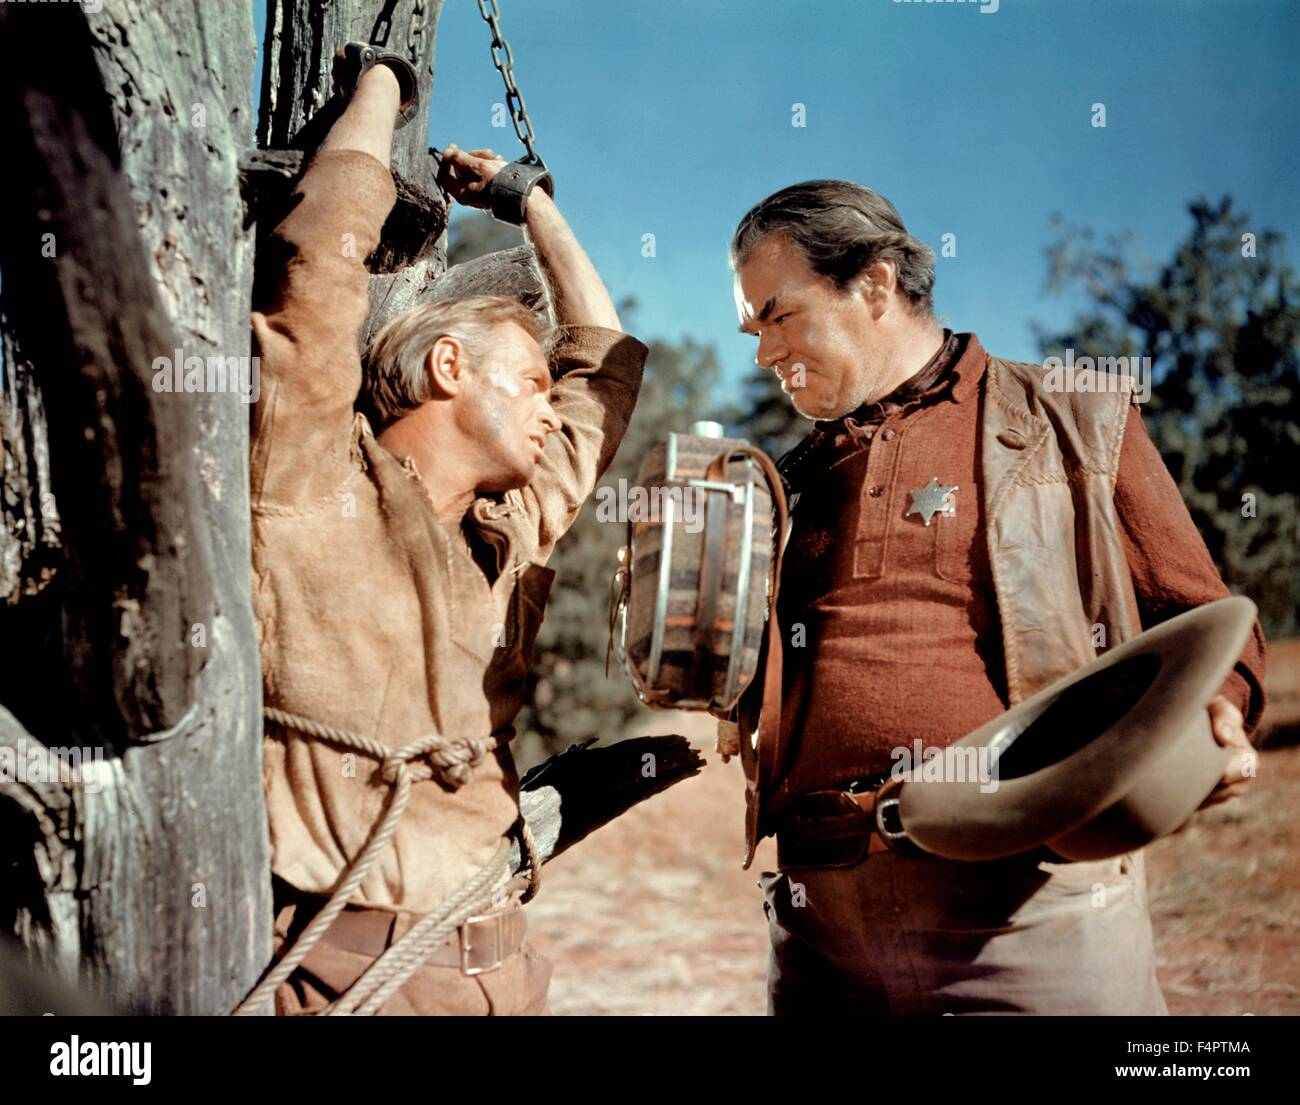 Richard Widmark and George Matthews / The Last Wagon / 1956 directed by Delmer Daves [Twentieth Century Fox Film - Stock Image